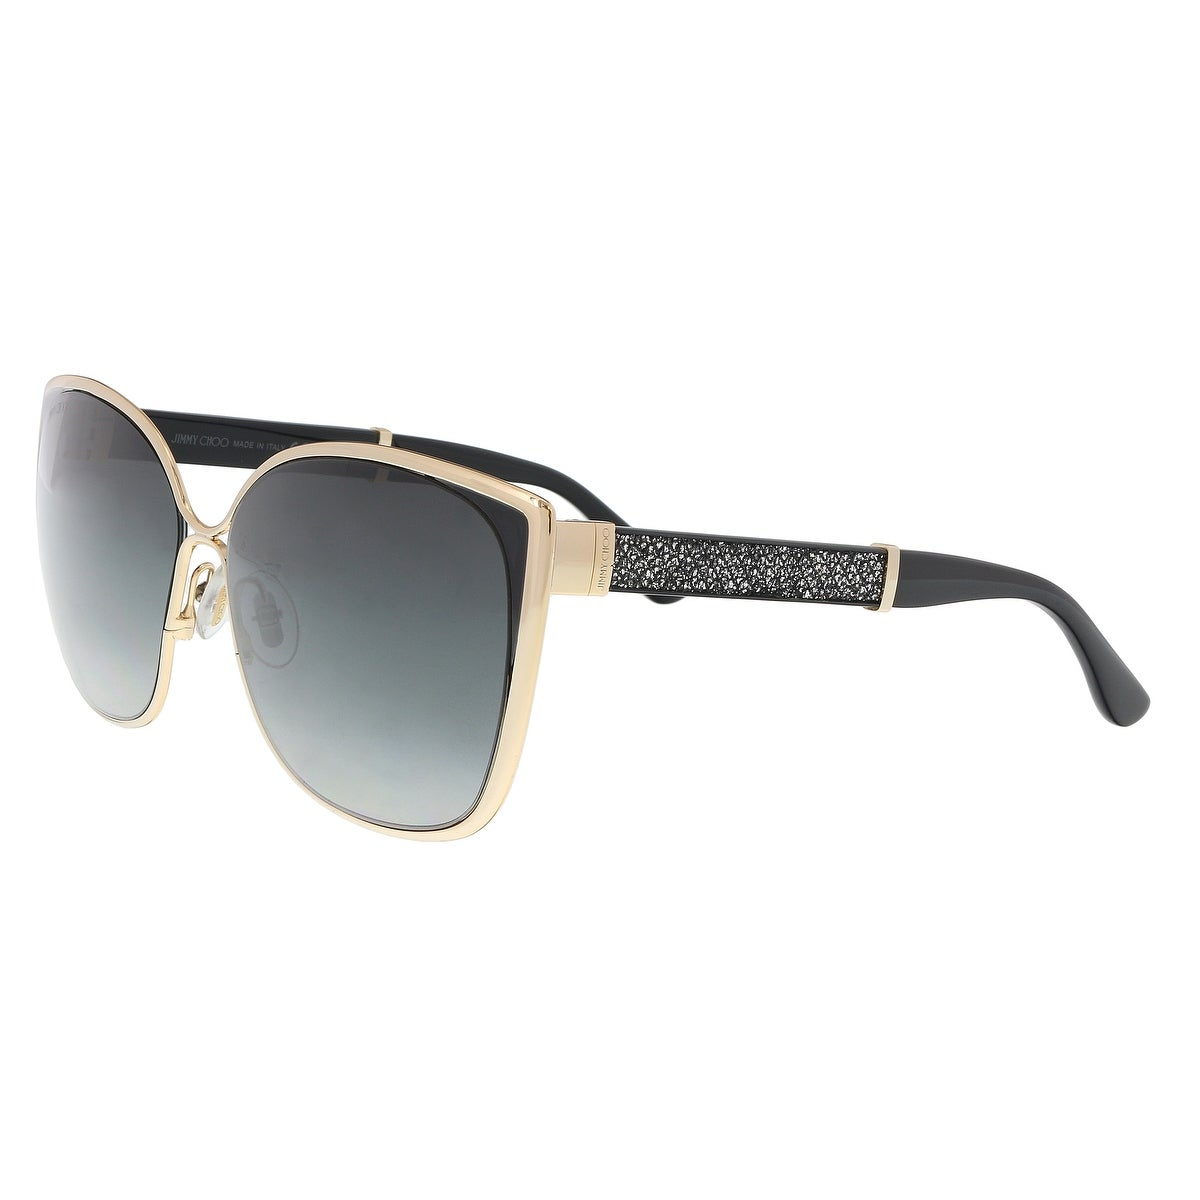 96103c4fdc5 Jimmy Choo Sunglasses